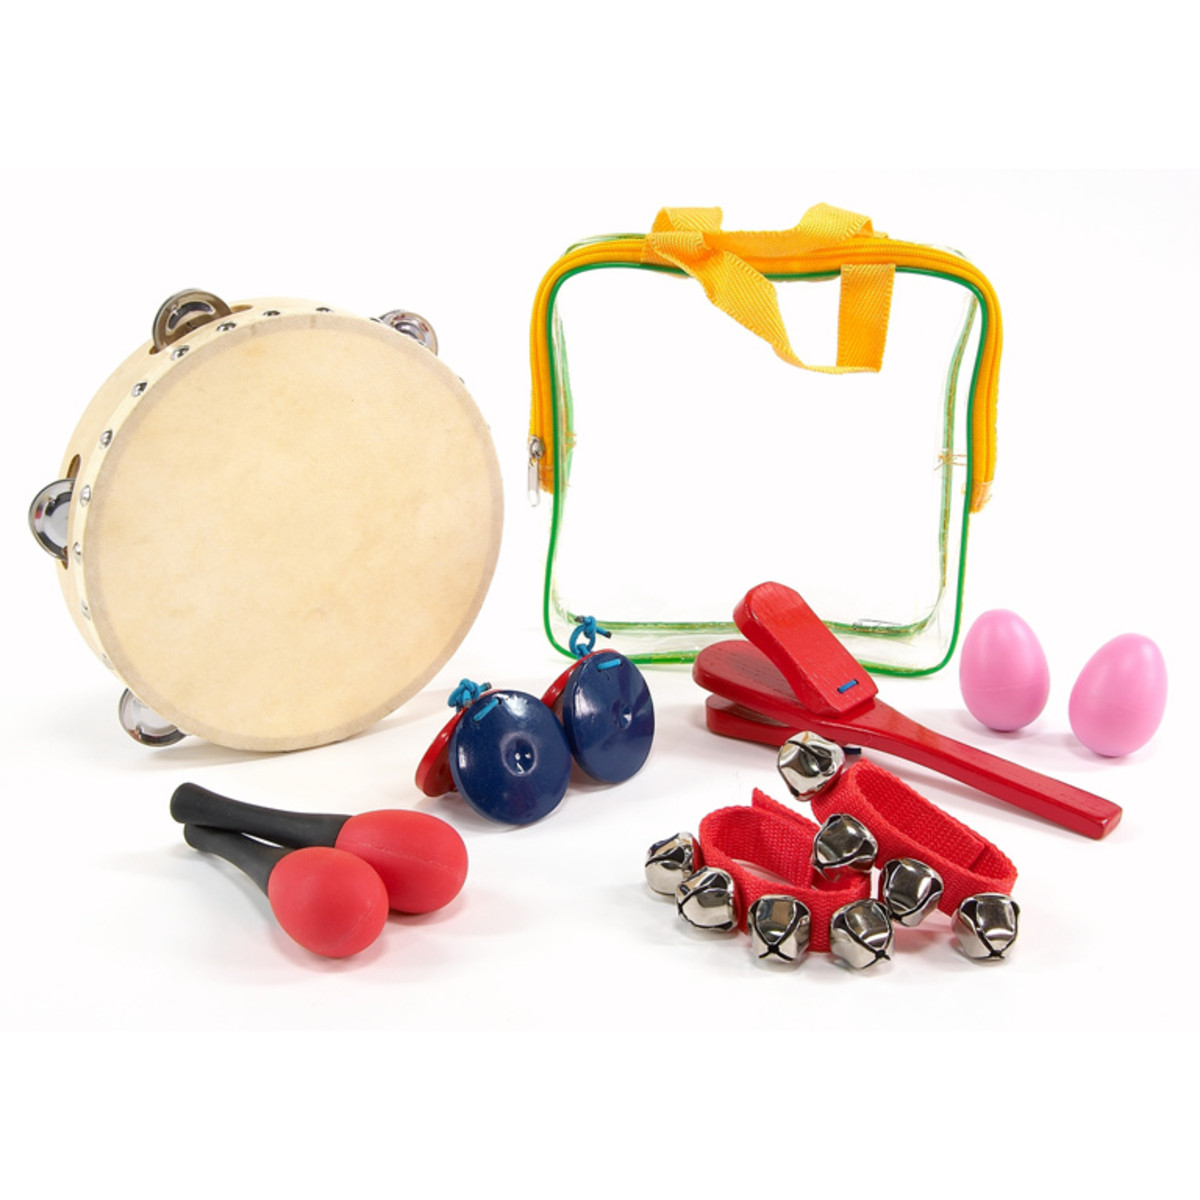 Image of 6 Piece Percussion Set with Carry Bag